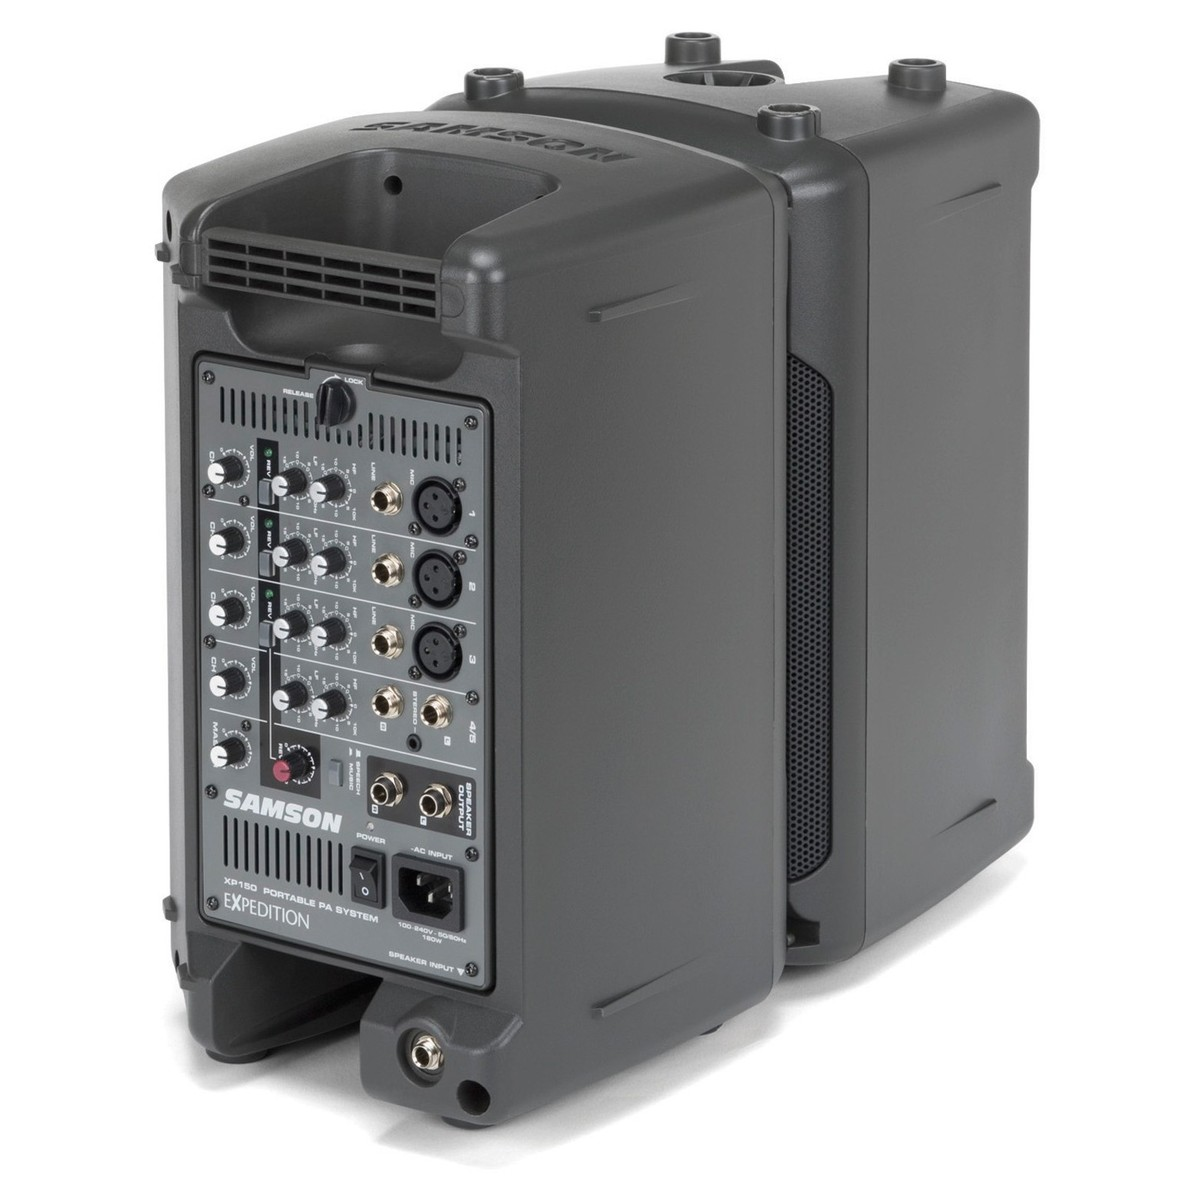 samson expedition xp150 portable pa system at gear4music. Black Bedroom Furniture Sets. Home Design Ideas